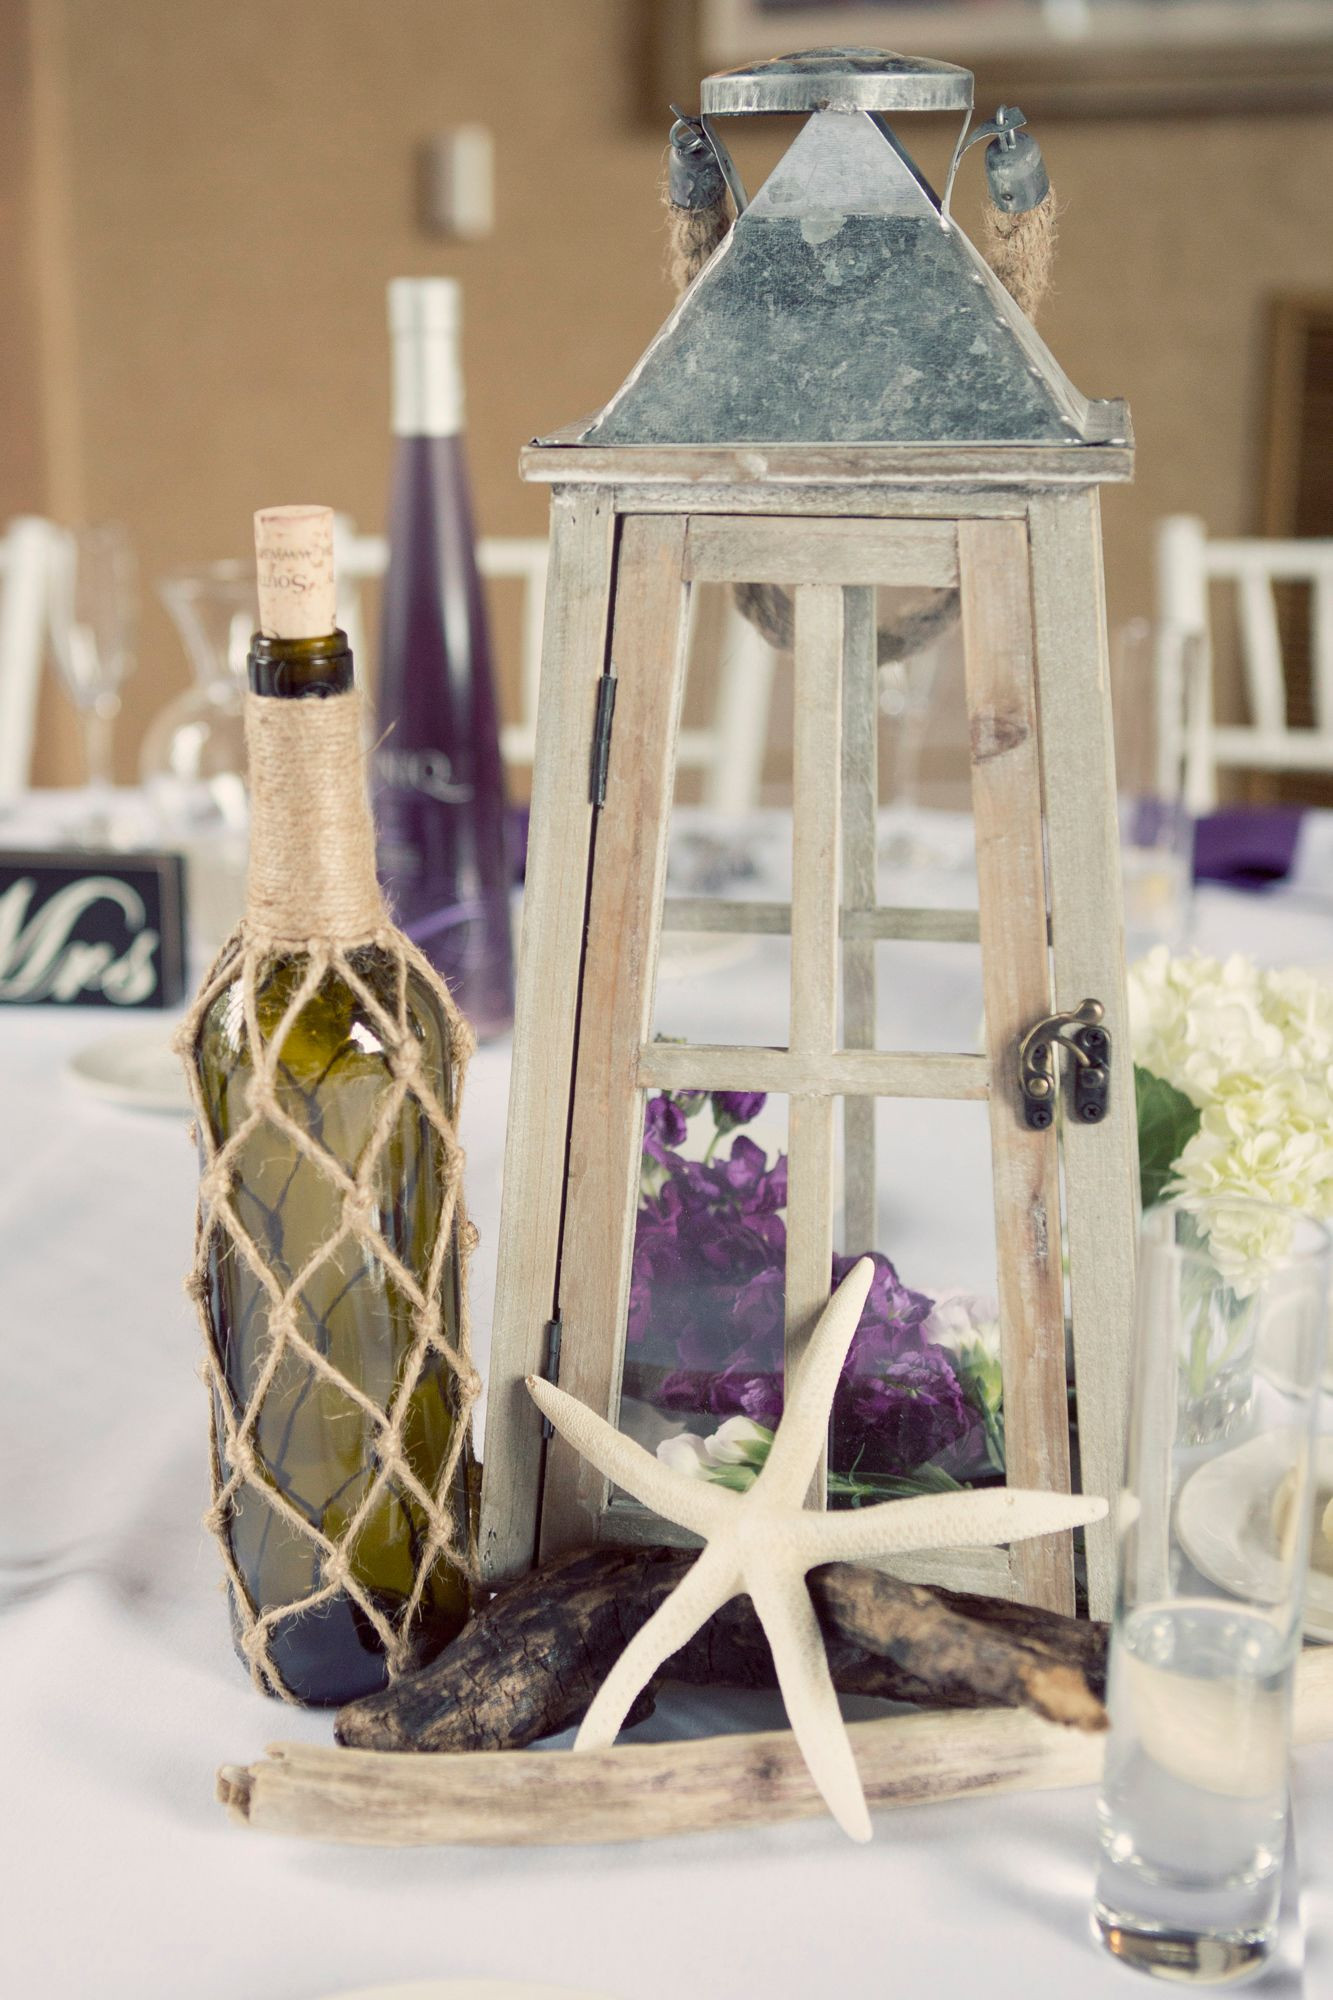 Best ideas about DIY Lantern Wedding Centerpieces . Save or Pin DIY Nautical Lantern and Bottle Centerpiece Now.